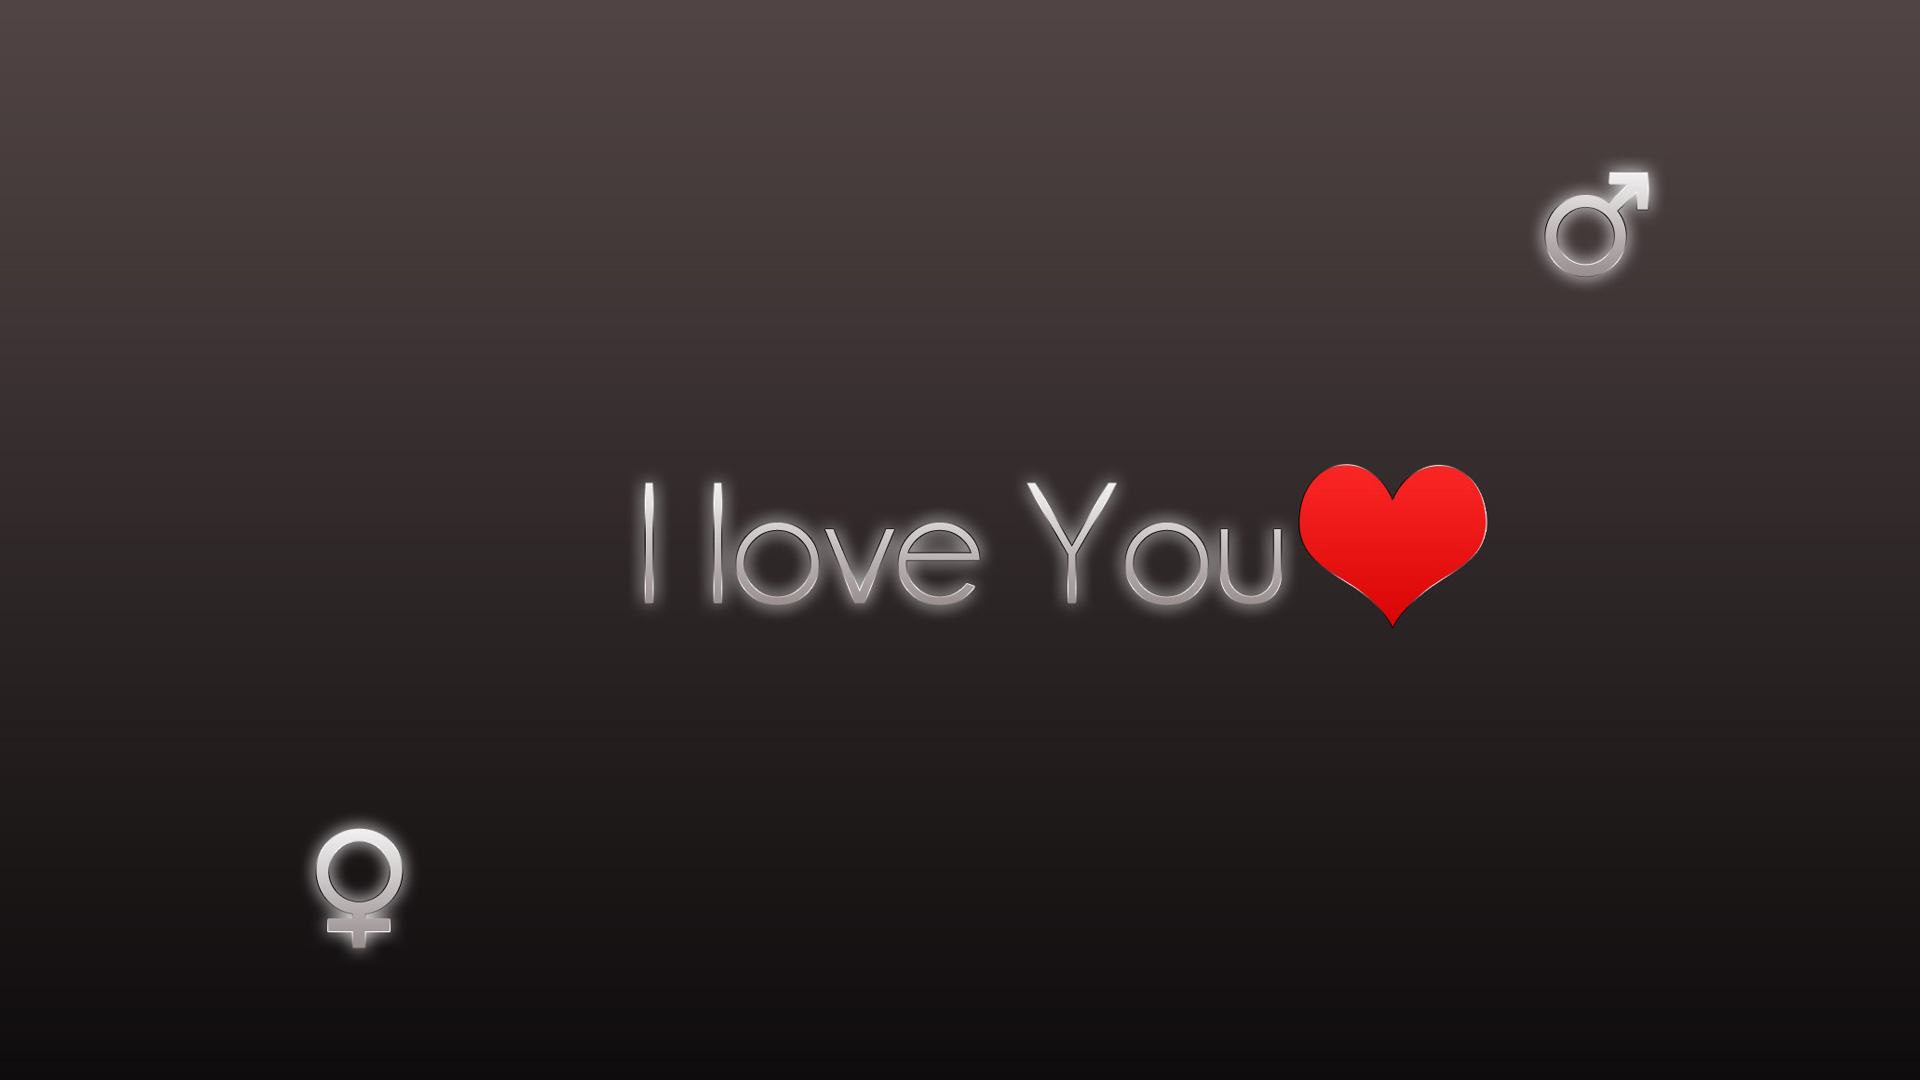 I Love You Jaan Wallpaper Hd : Wallpapers Minimalistas Full HD - Taringa!